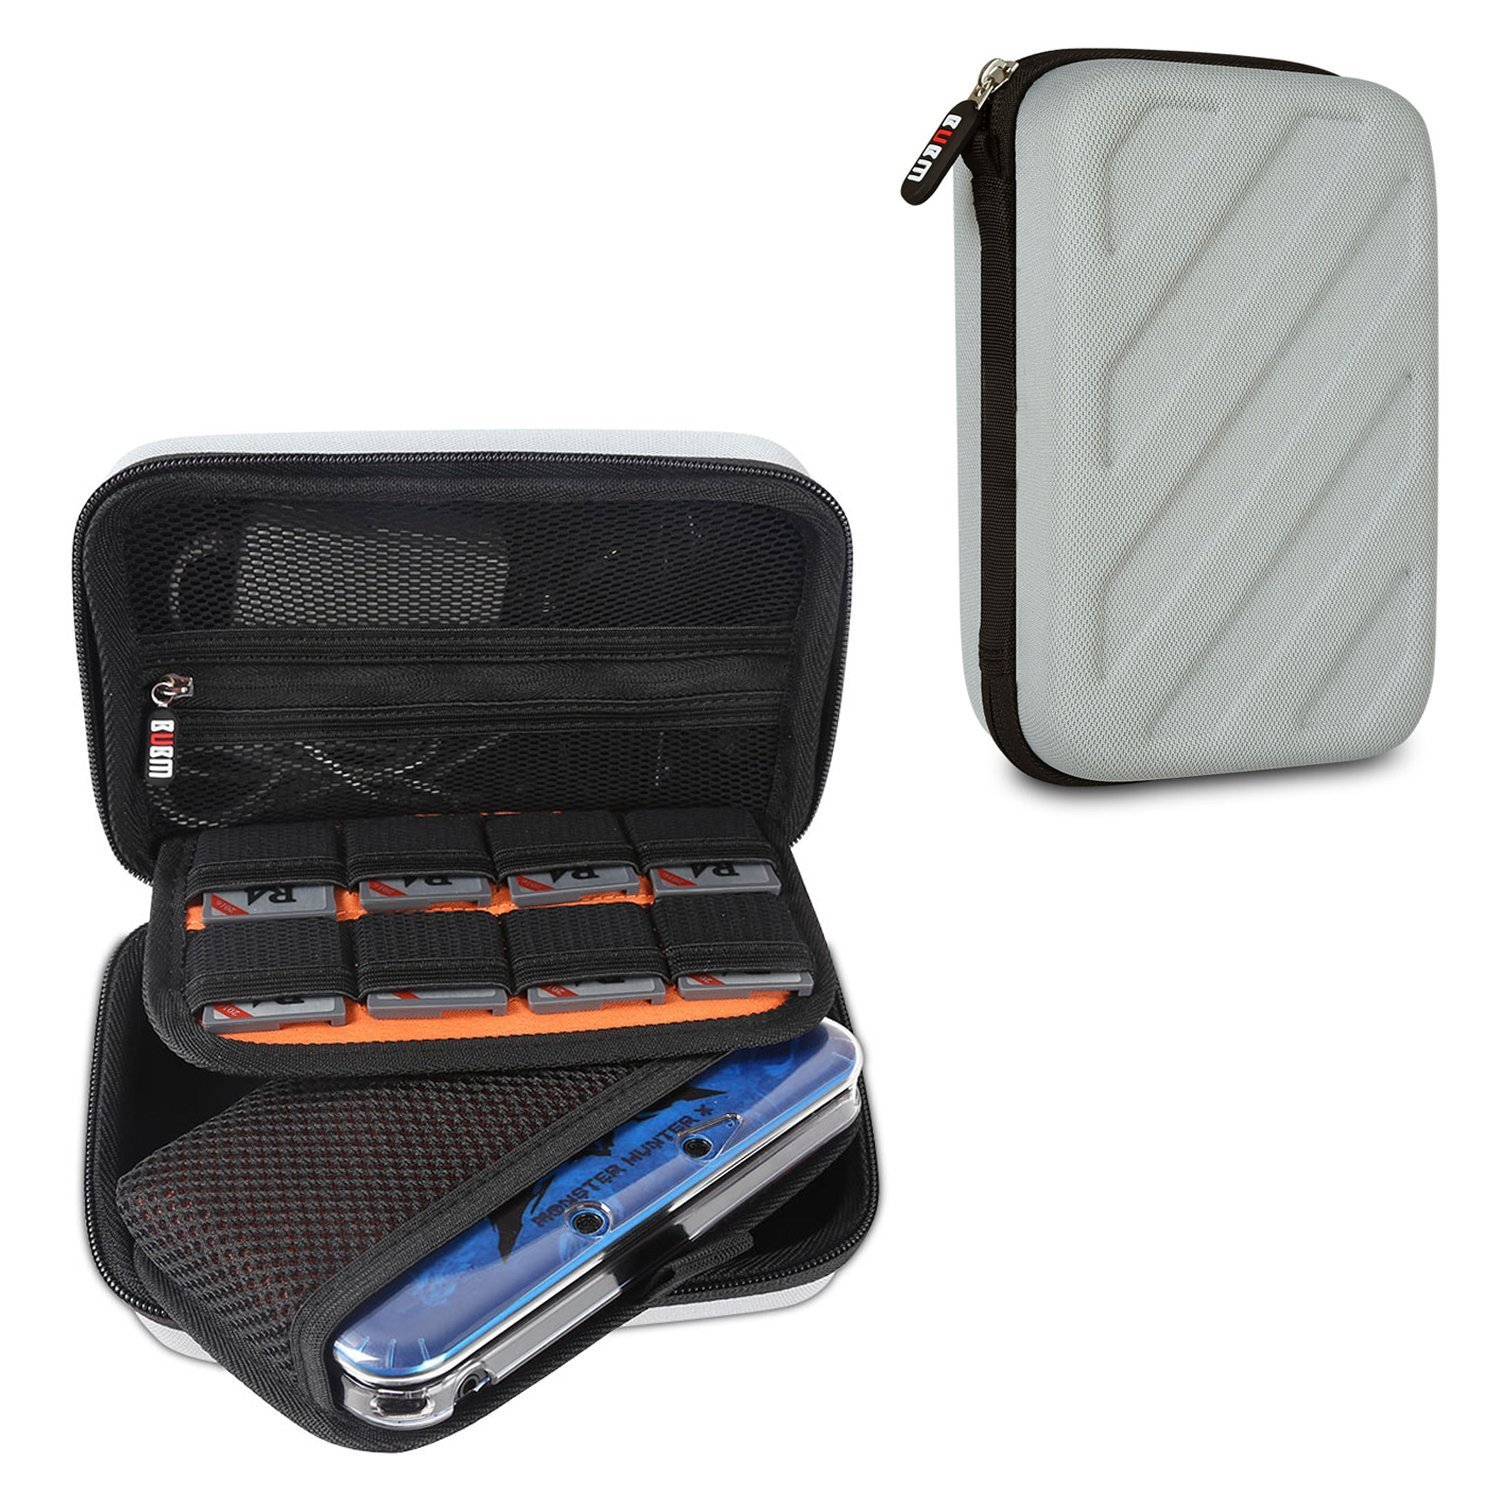 BUBM New 3DS/3DS XL/3DS LL Travel Game Case -Travel Carrying Case for New Nintendo DS Gaming Console -Hard EVA Nintendo 3ds pouch With 8 Game cartridges Holders-Grey